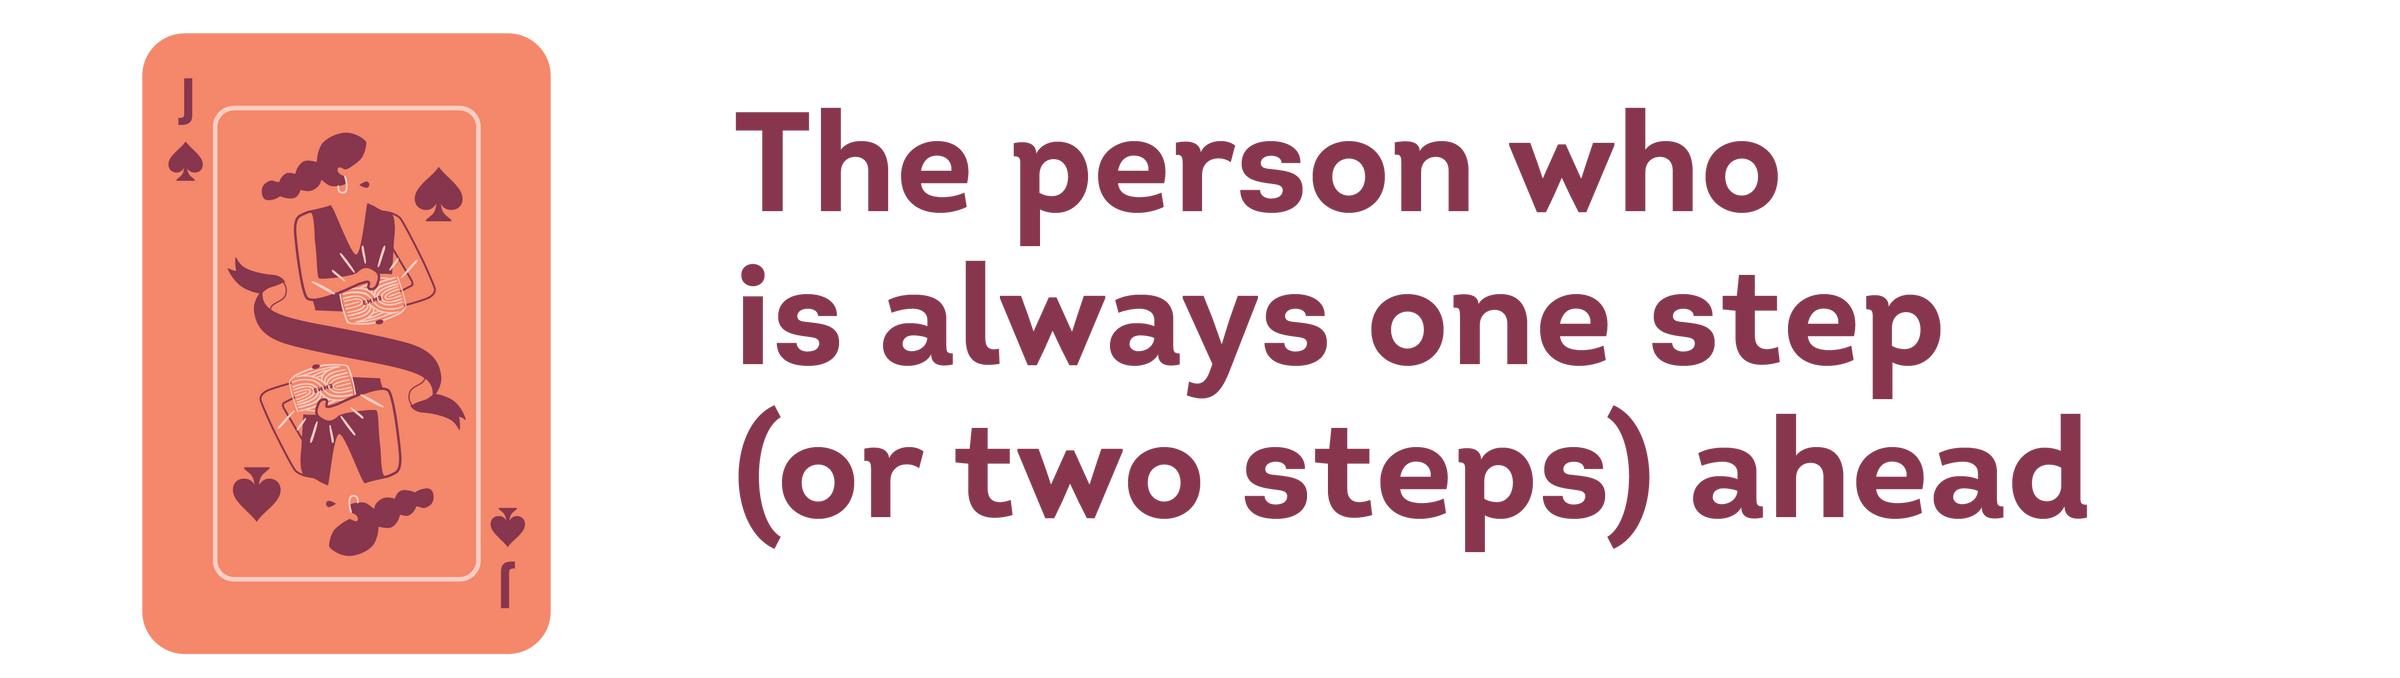 the person who is always one step (or two steps) ahead